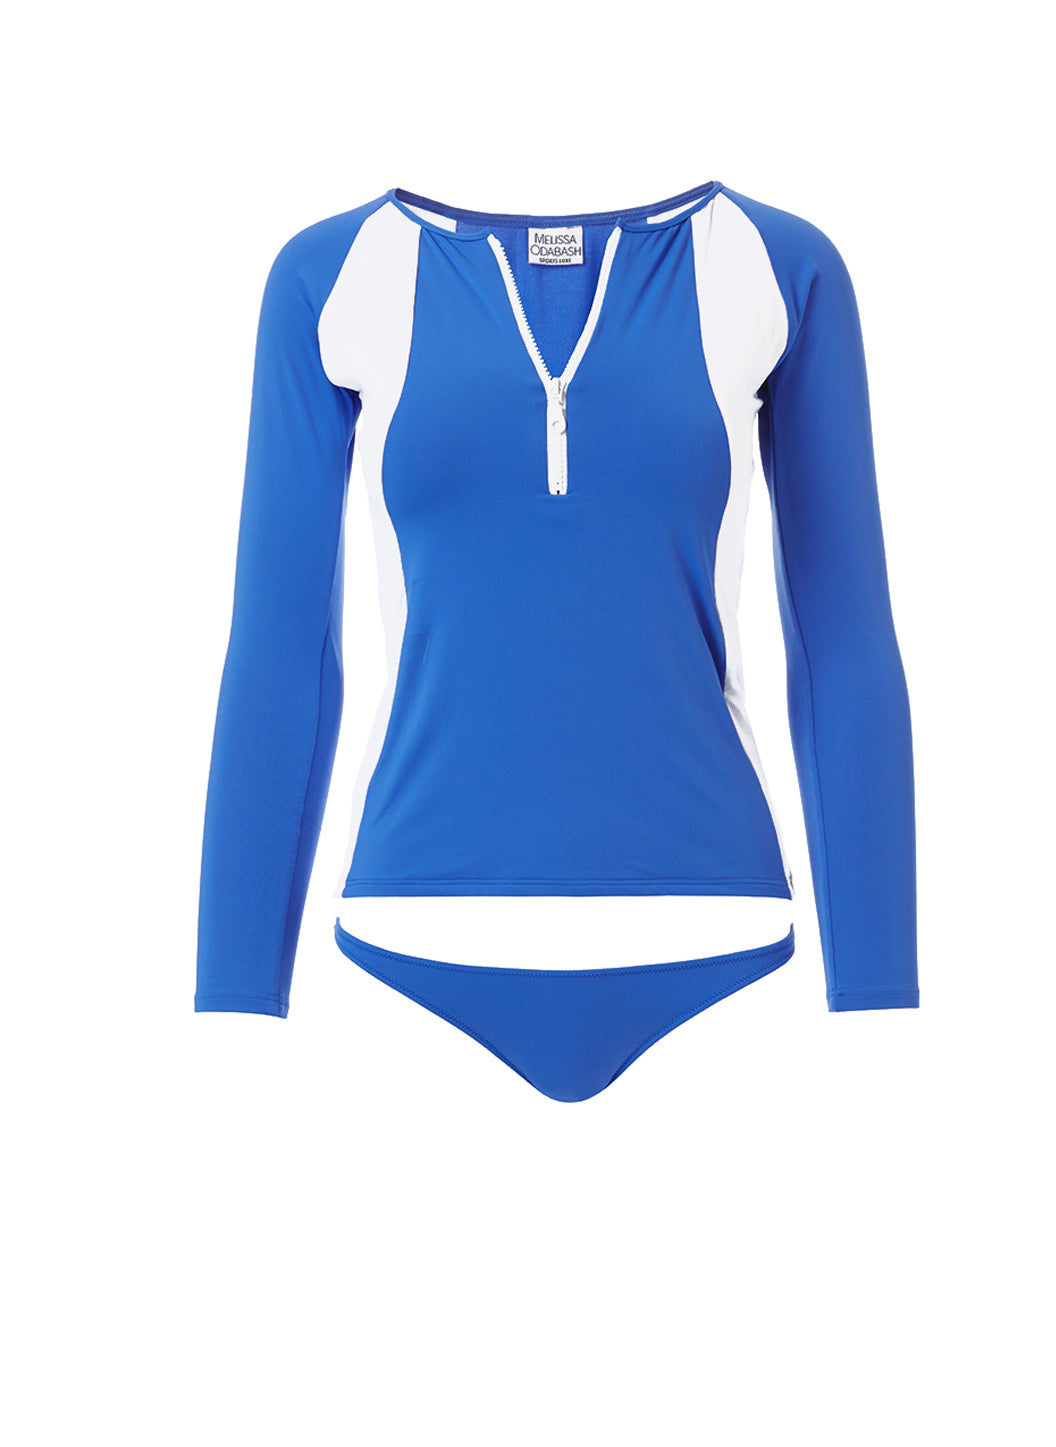 Bondi Cobalt White Sports Long Sleeve Rash Vest - Melissa Odabash Zip Up Bikinis